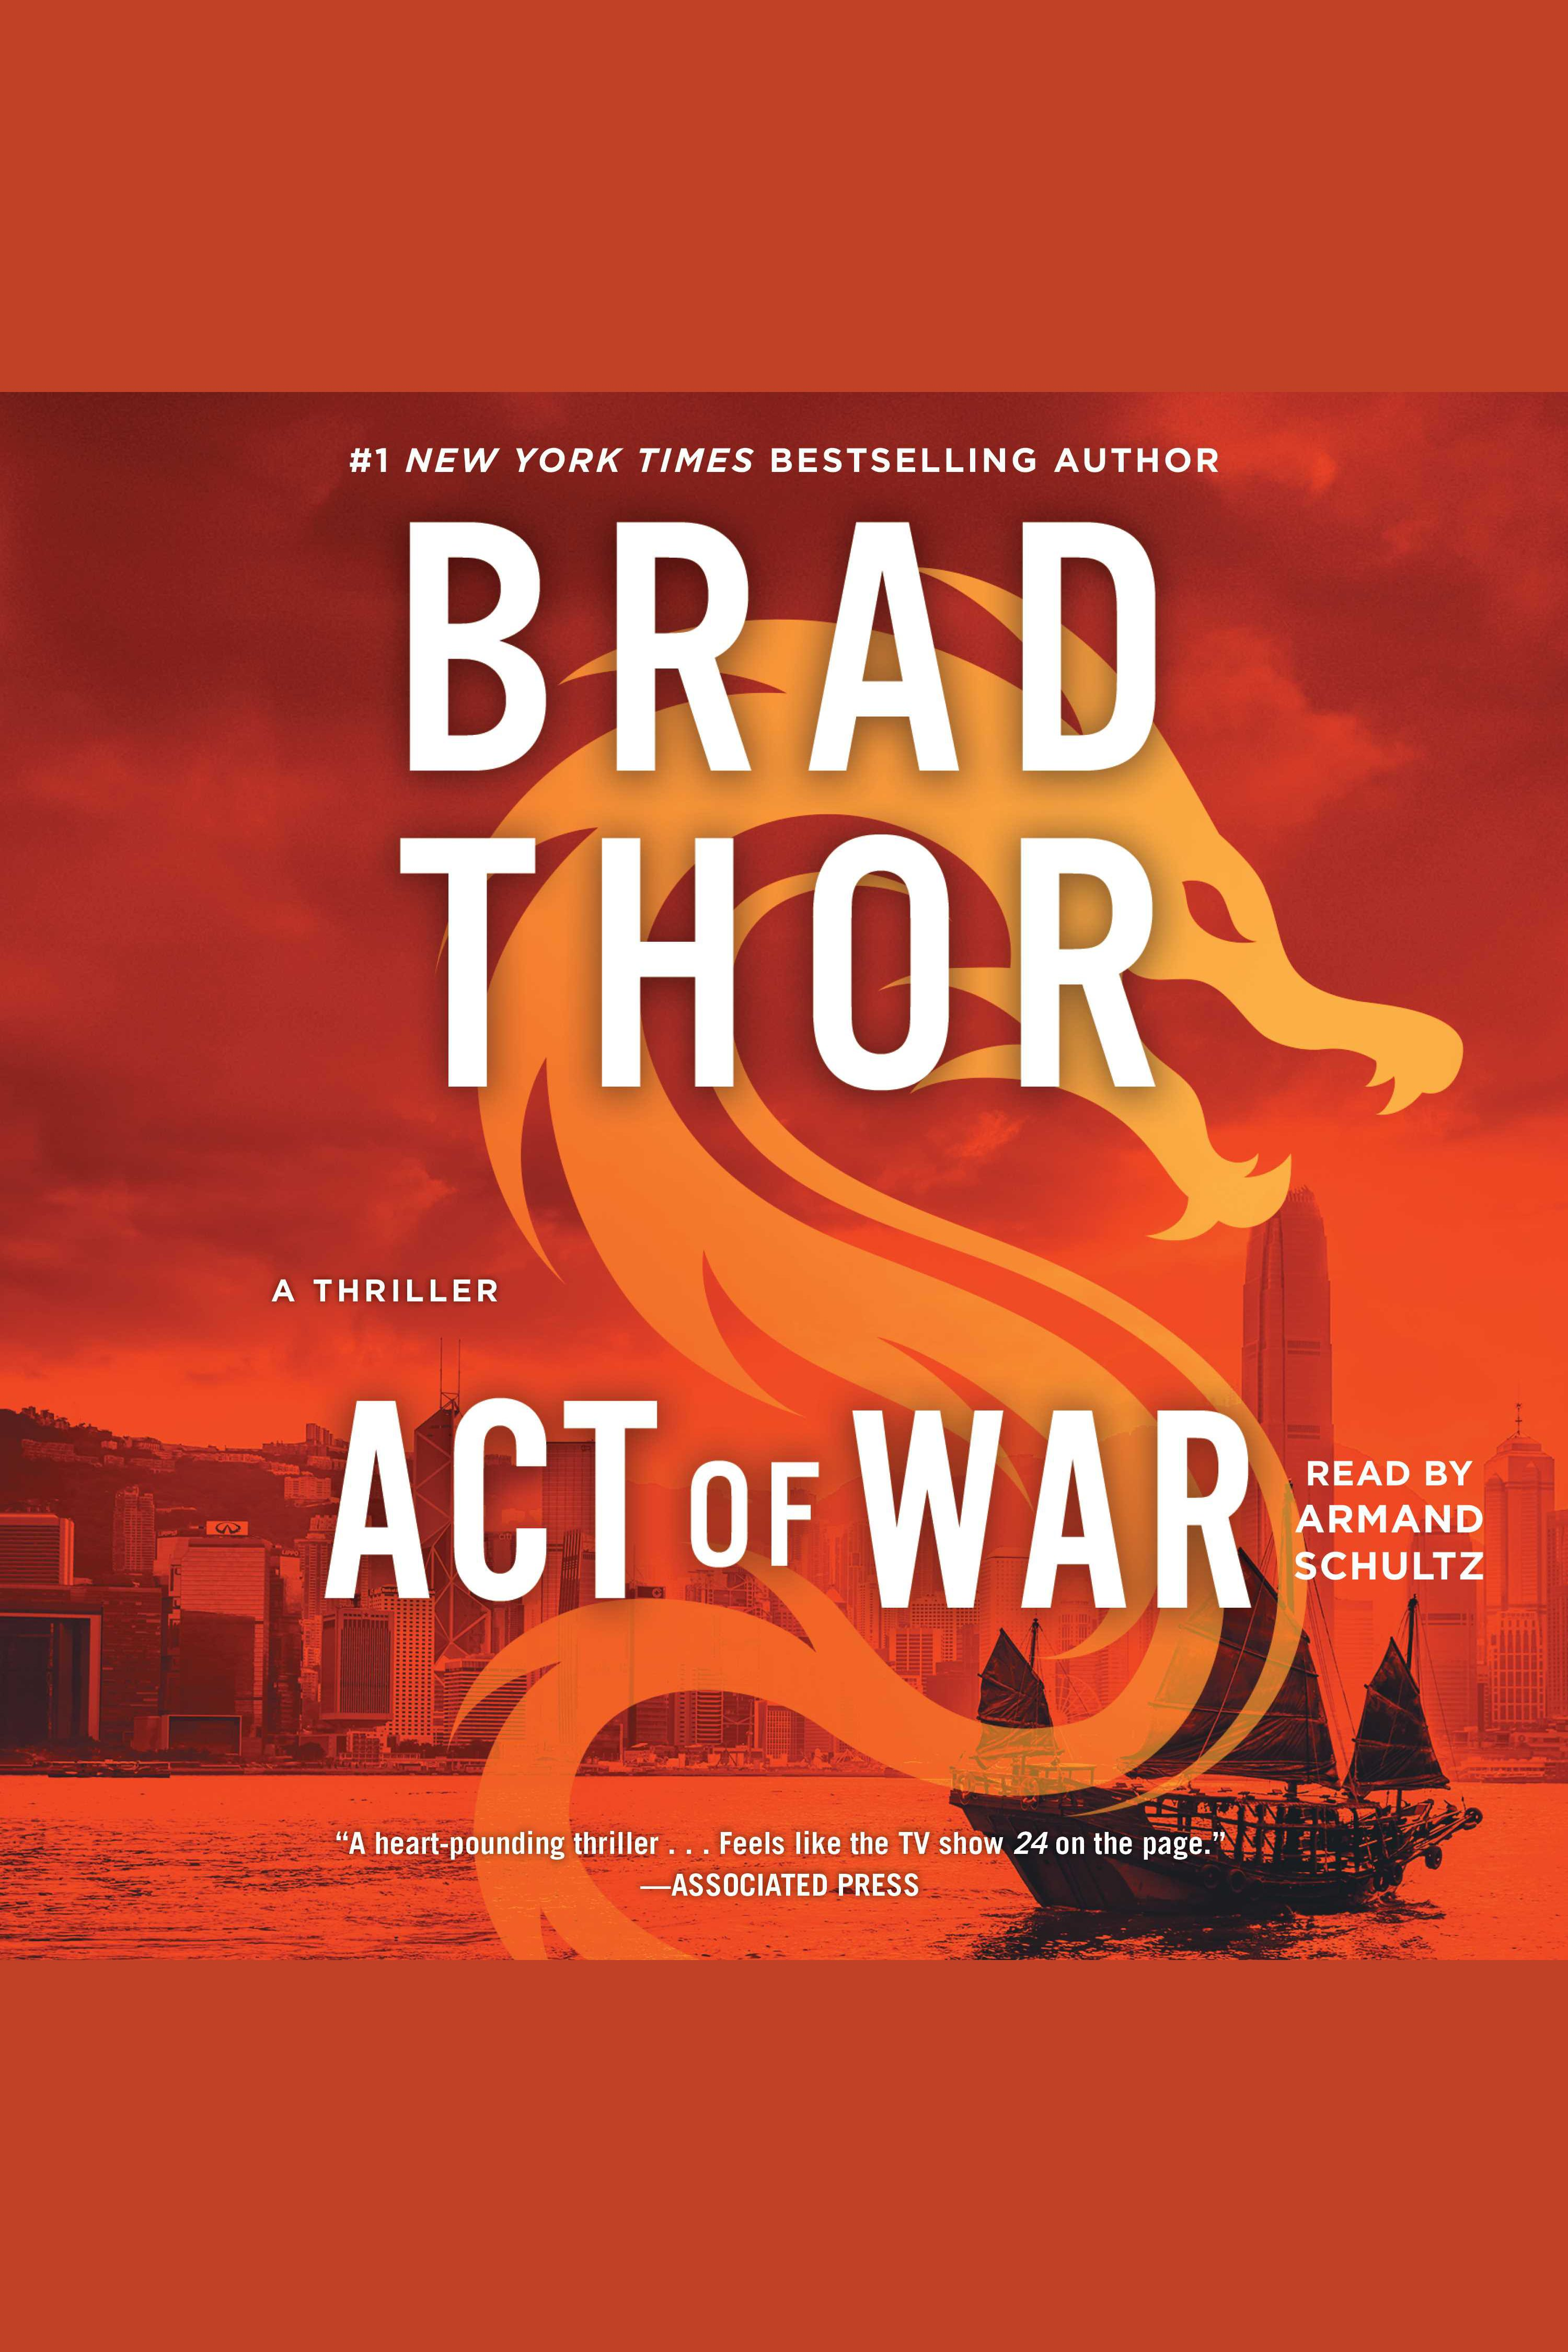 Act of war a thriller cover image